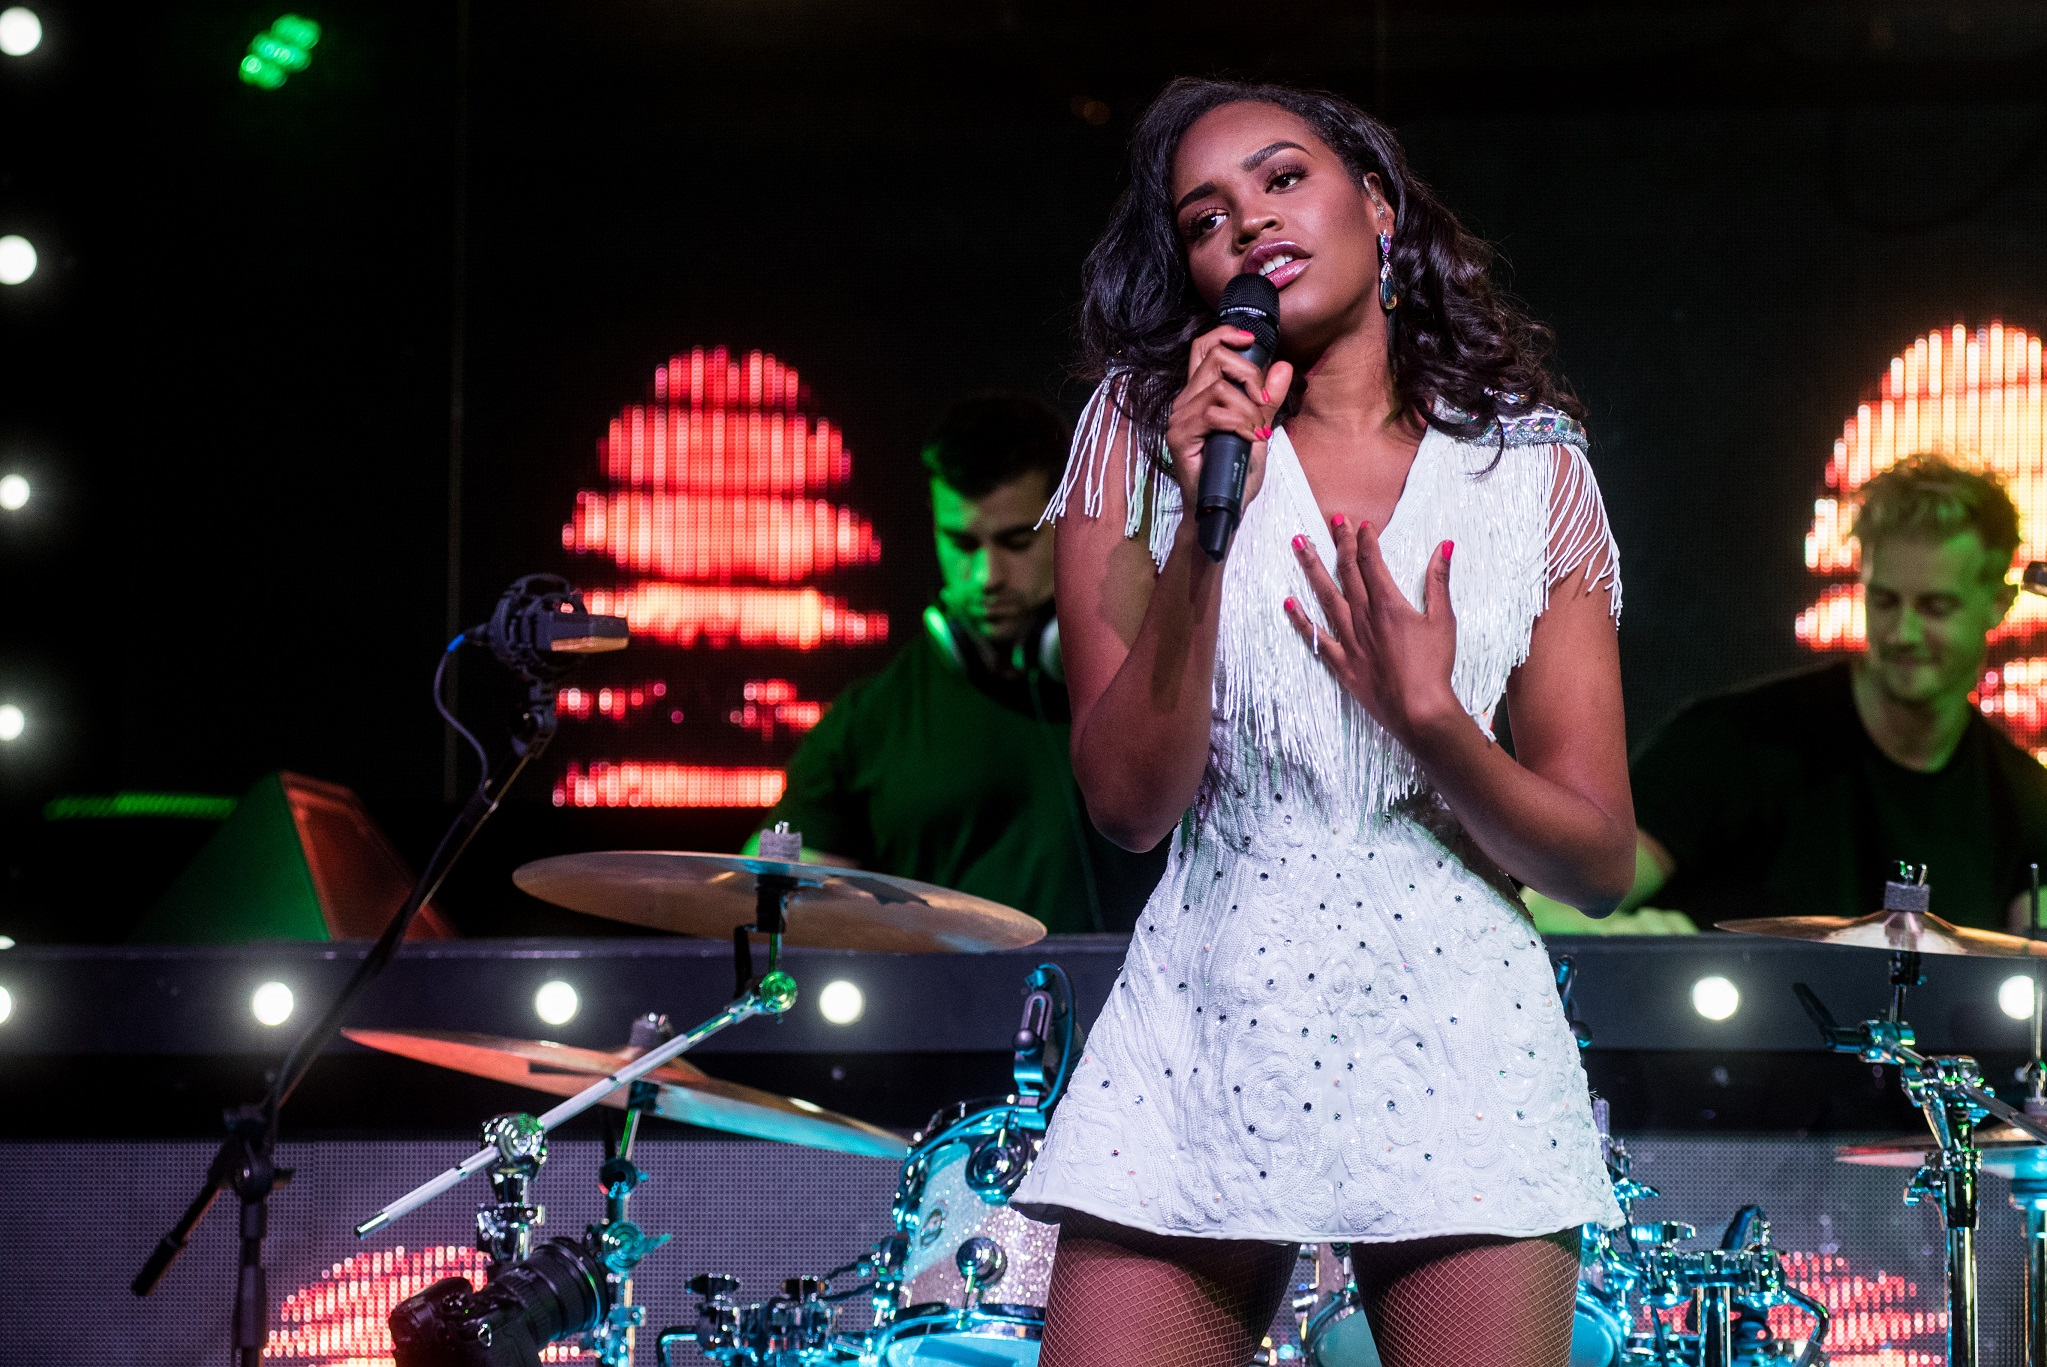 Glorious-Singer-Livetronica Drummer-Producer-Songwriter-Marquee-Nightclub-Video-New York-NY-28lr.jpg